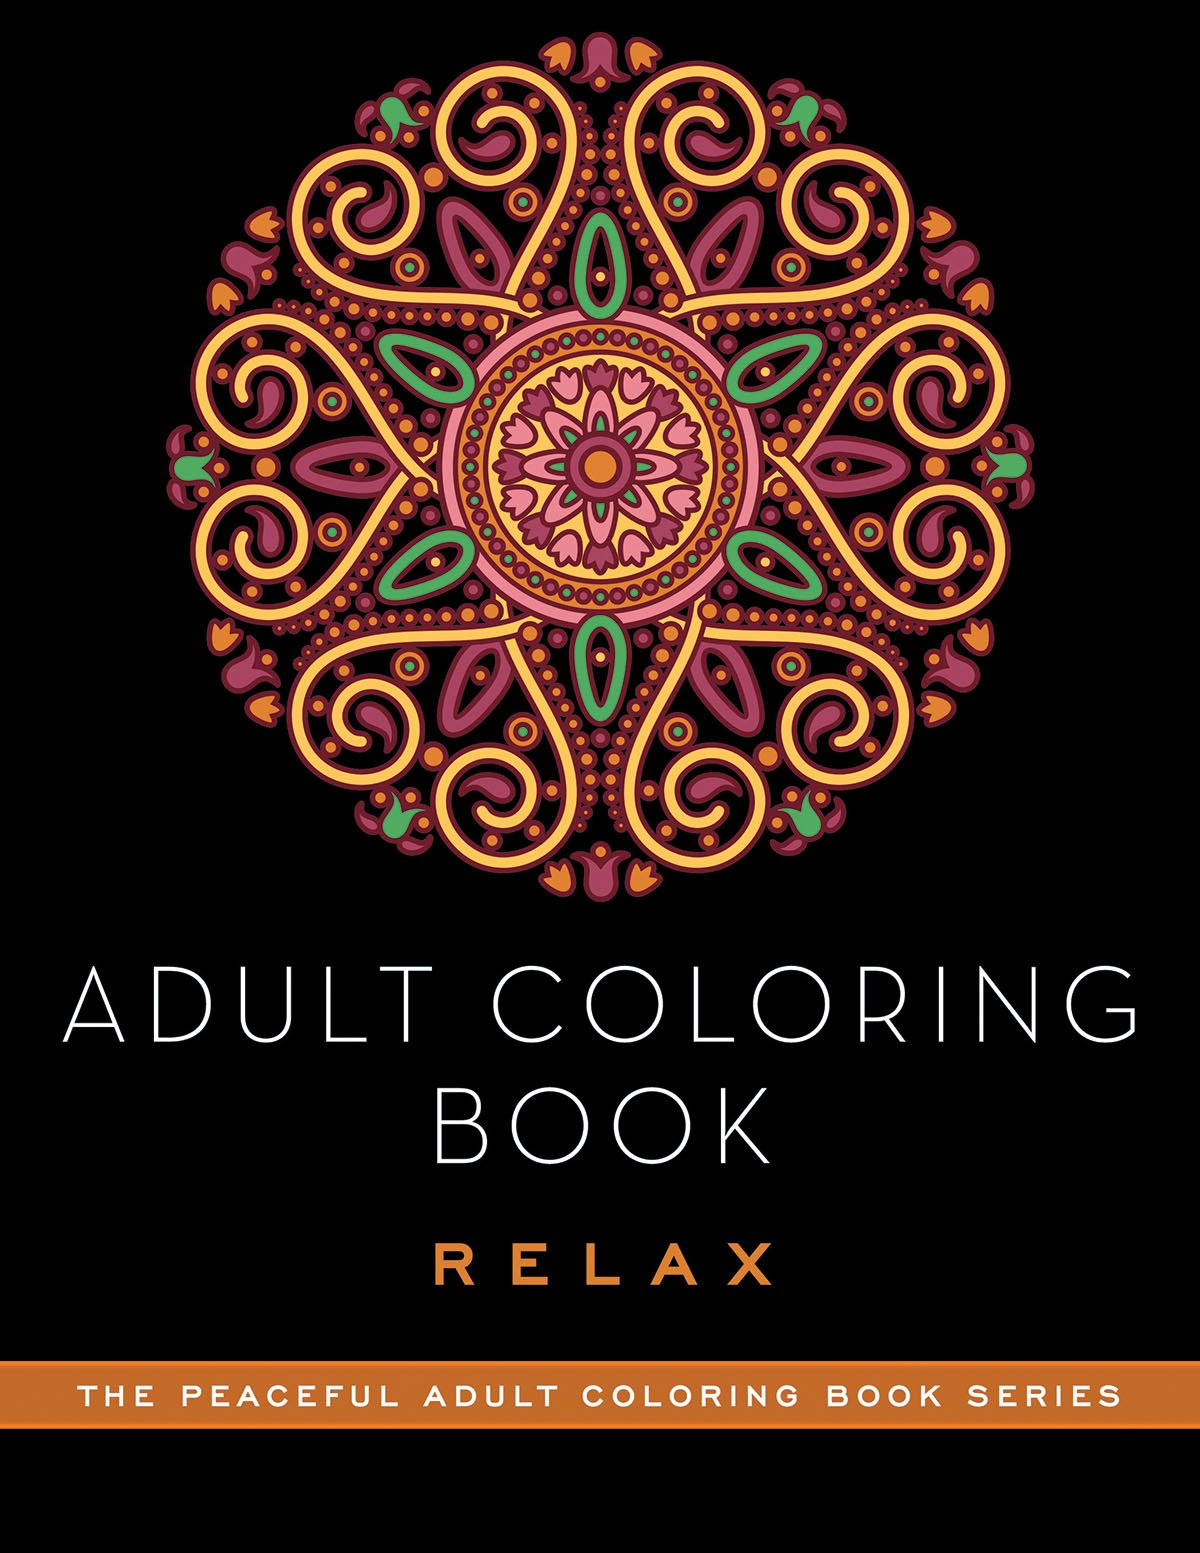 Adult Coloring Book: Relax (The Peaceful Adult Coloring Book Series) by Skyhorse Publishing (Image #1)